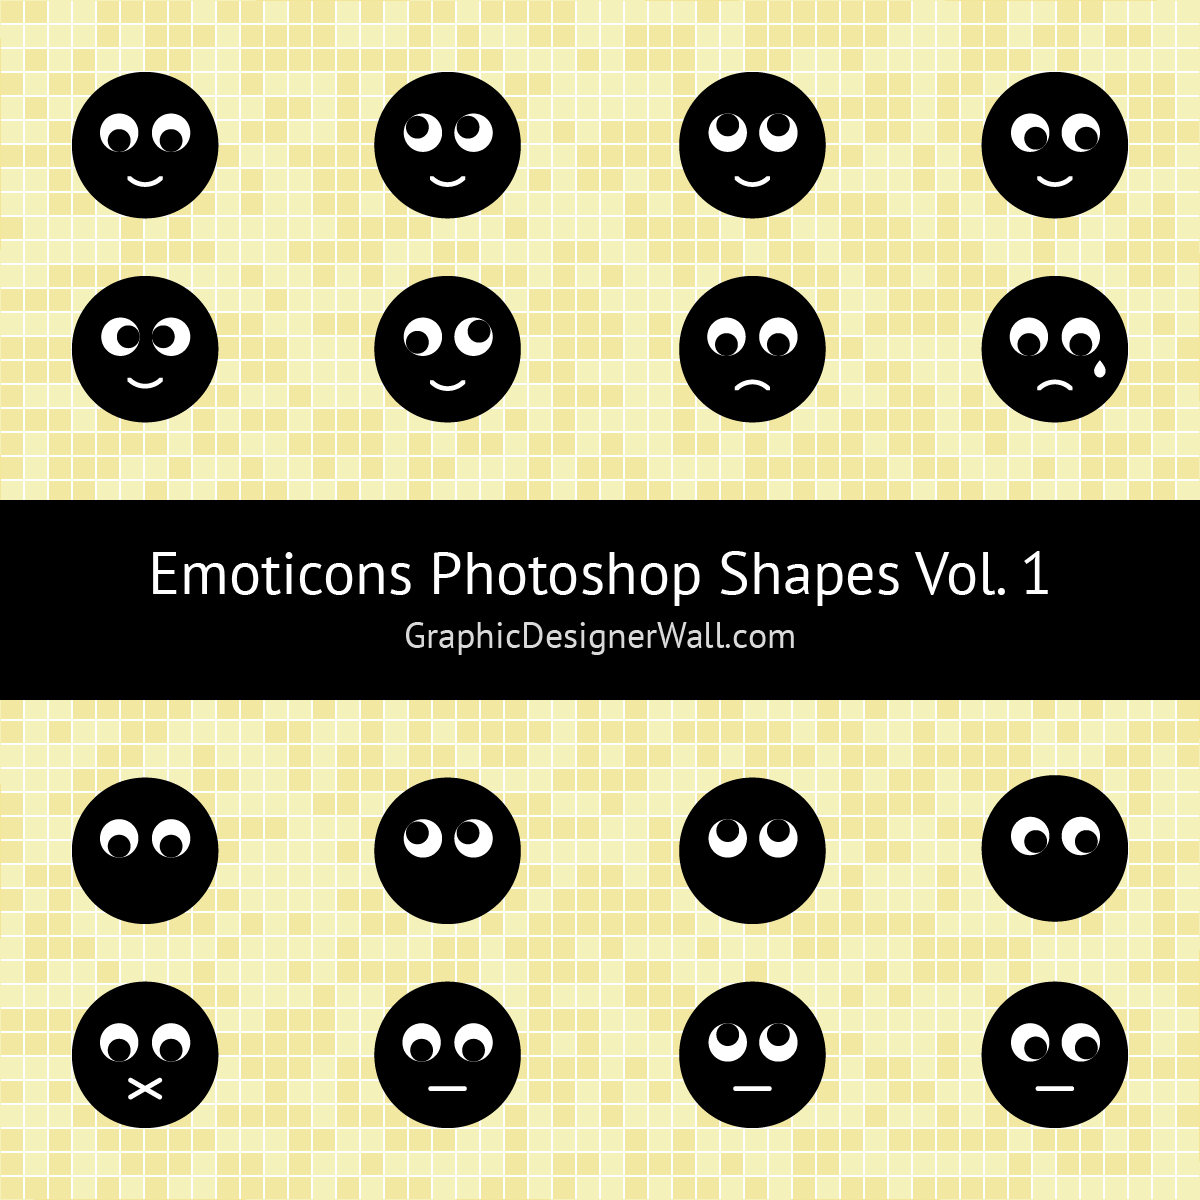 Cute Emoticons Photoshop Shapes (Volume 1)